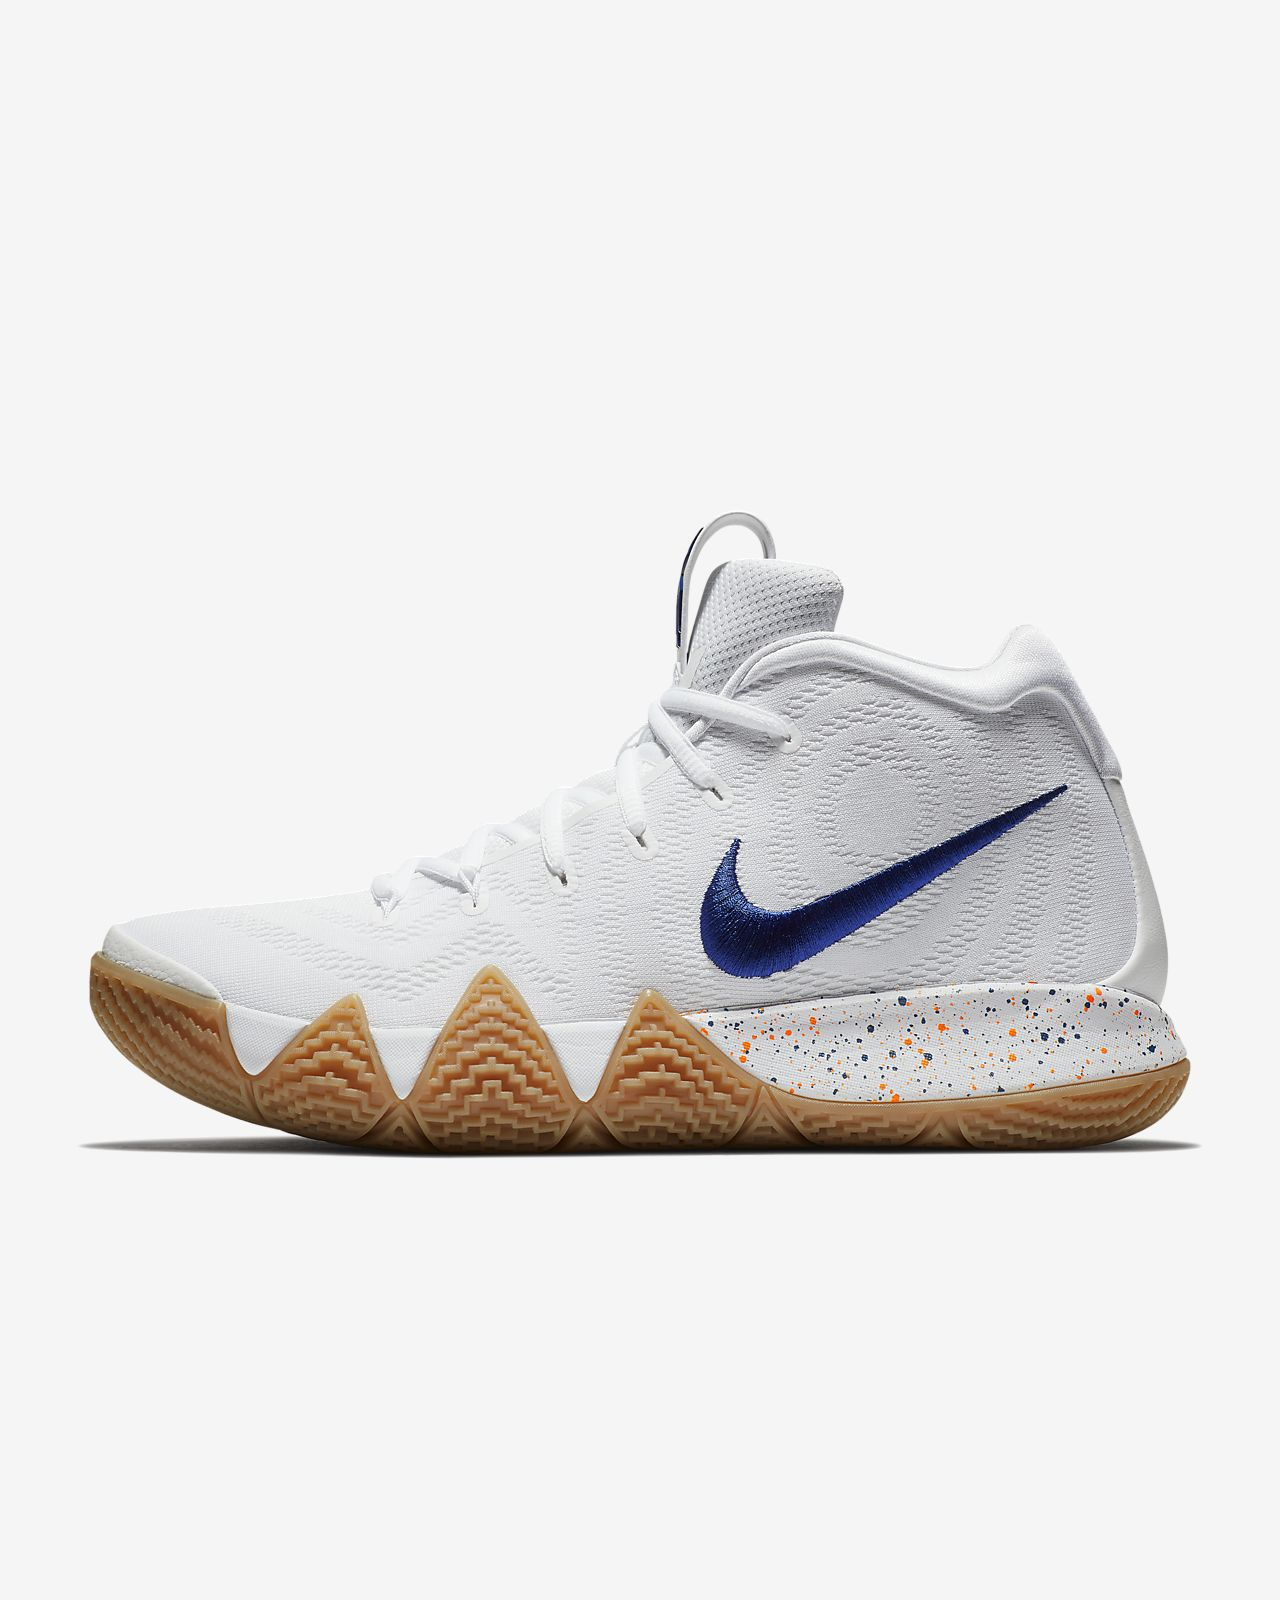 on sale 77cd6 c403f Kyrie 4 'Uncle Drew' Basketball Shoe